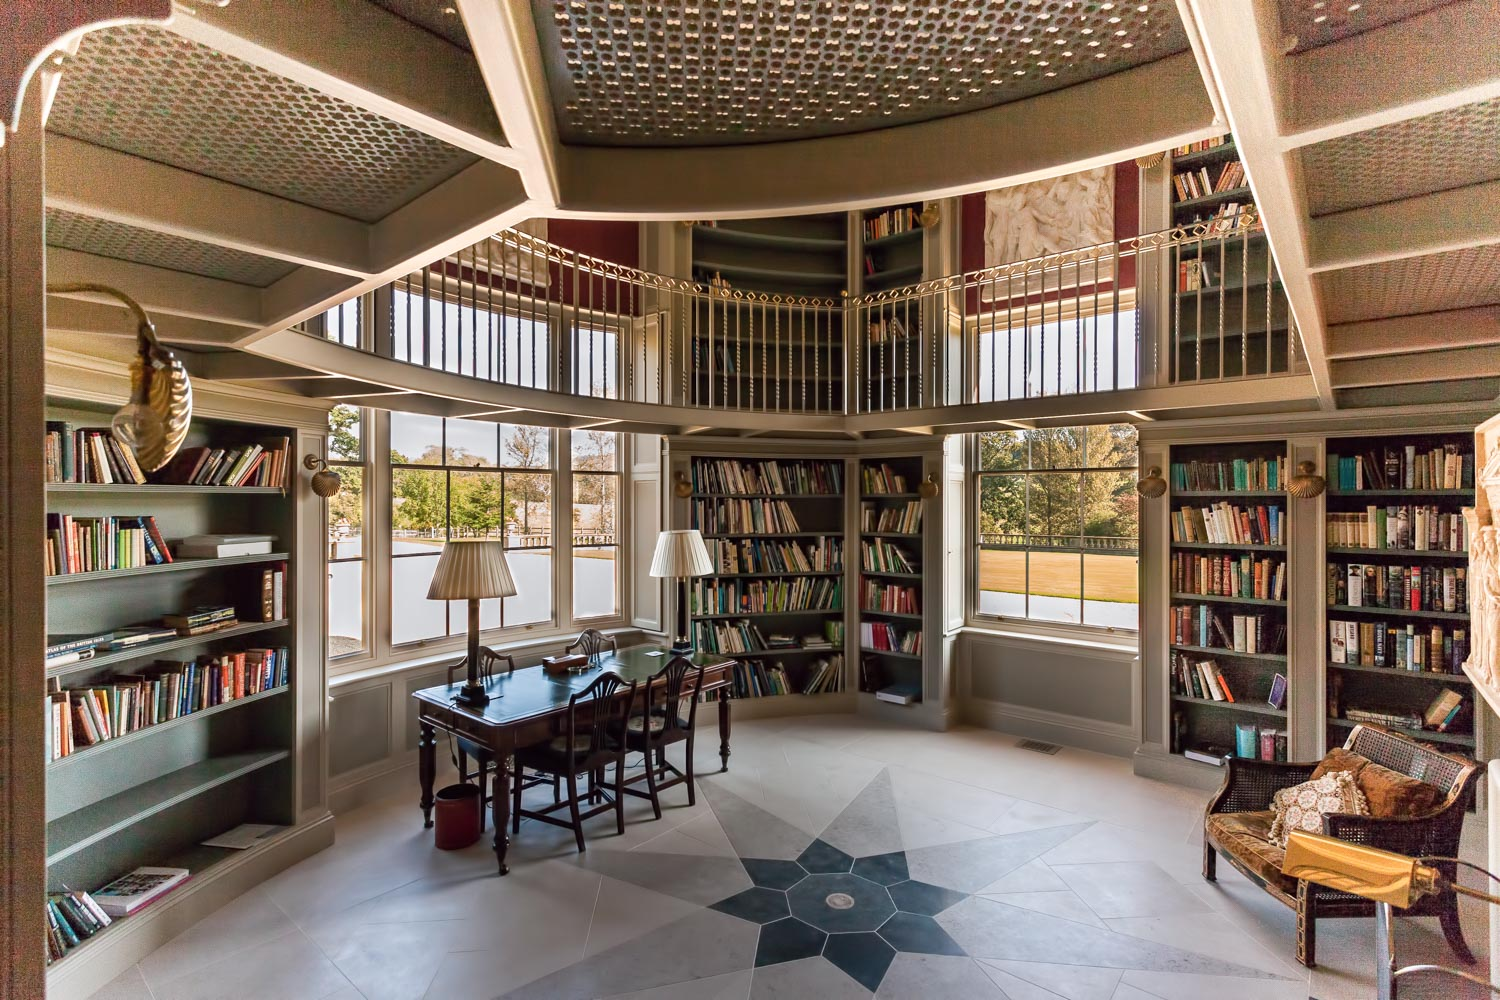 Private library by Rick McEvoy Architectural Photographer in Dorset.jpg